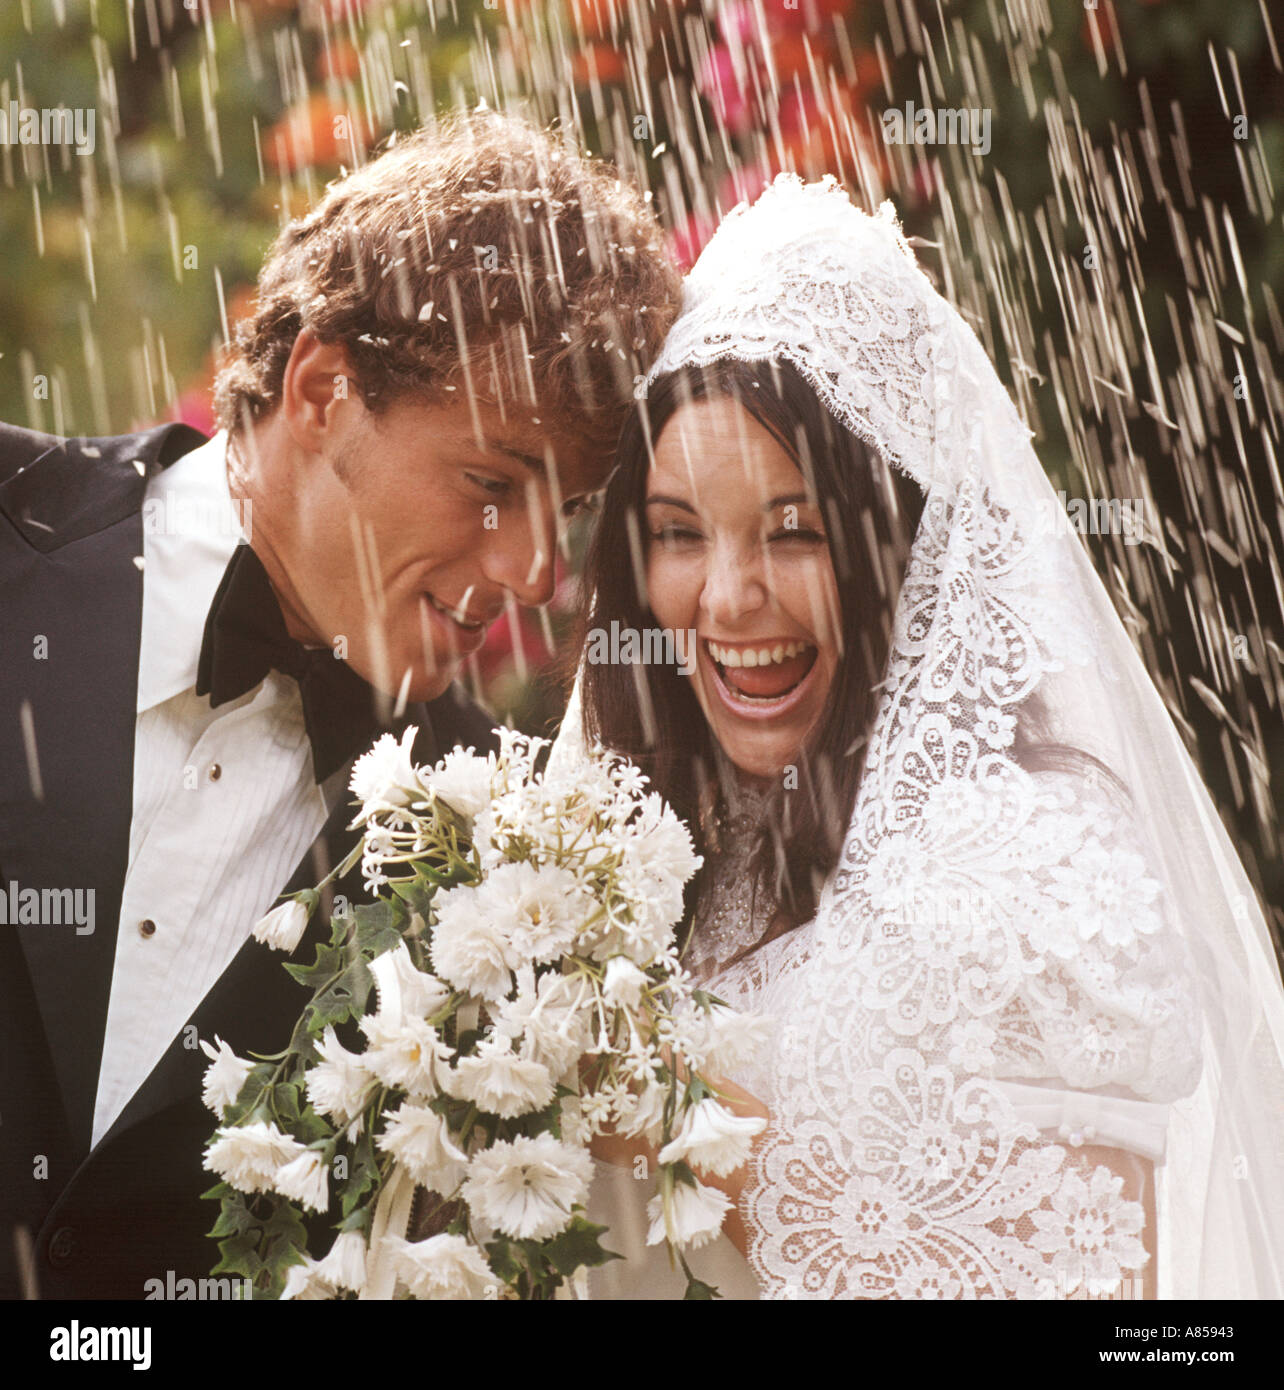 Wedding Couple Being Showered With Rice After Ceremony